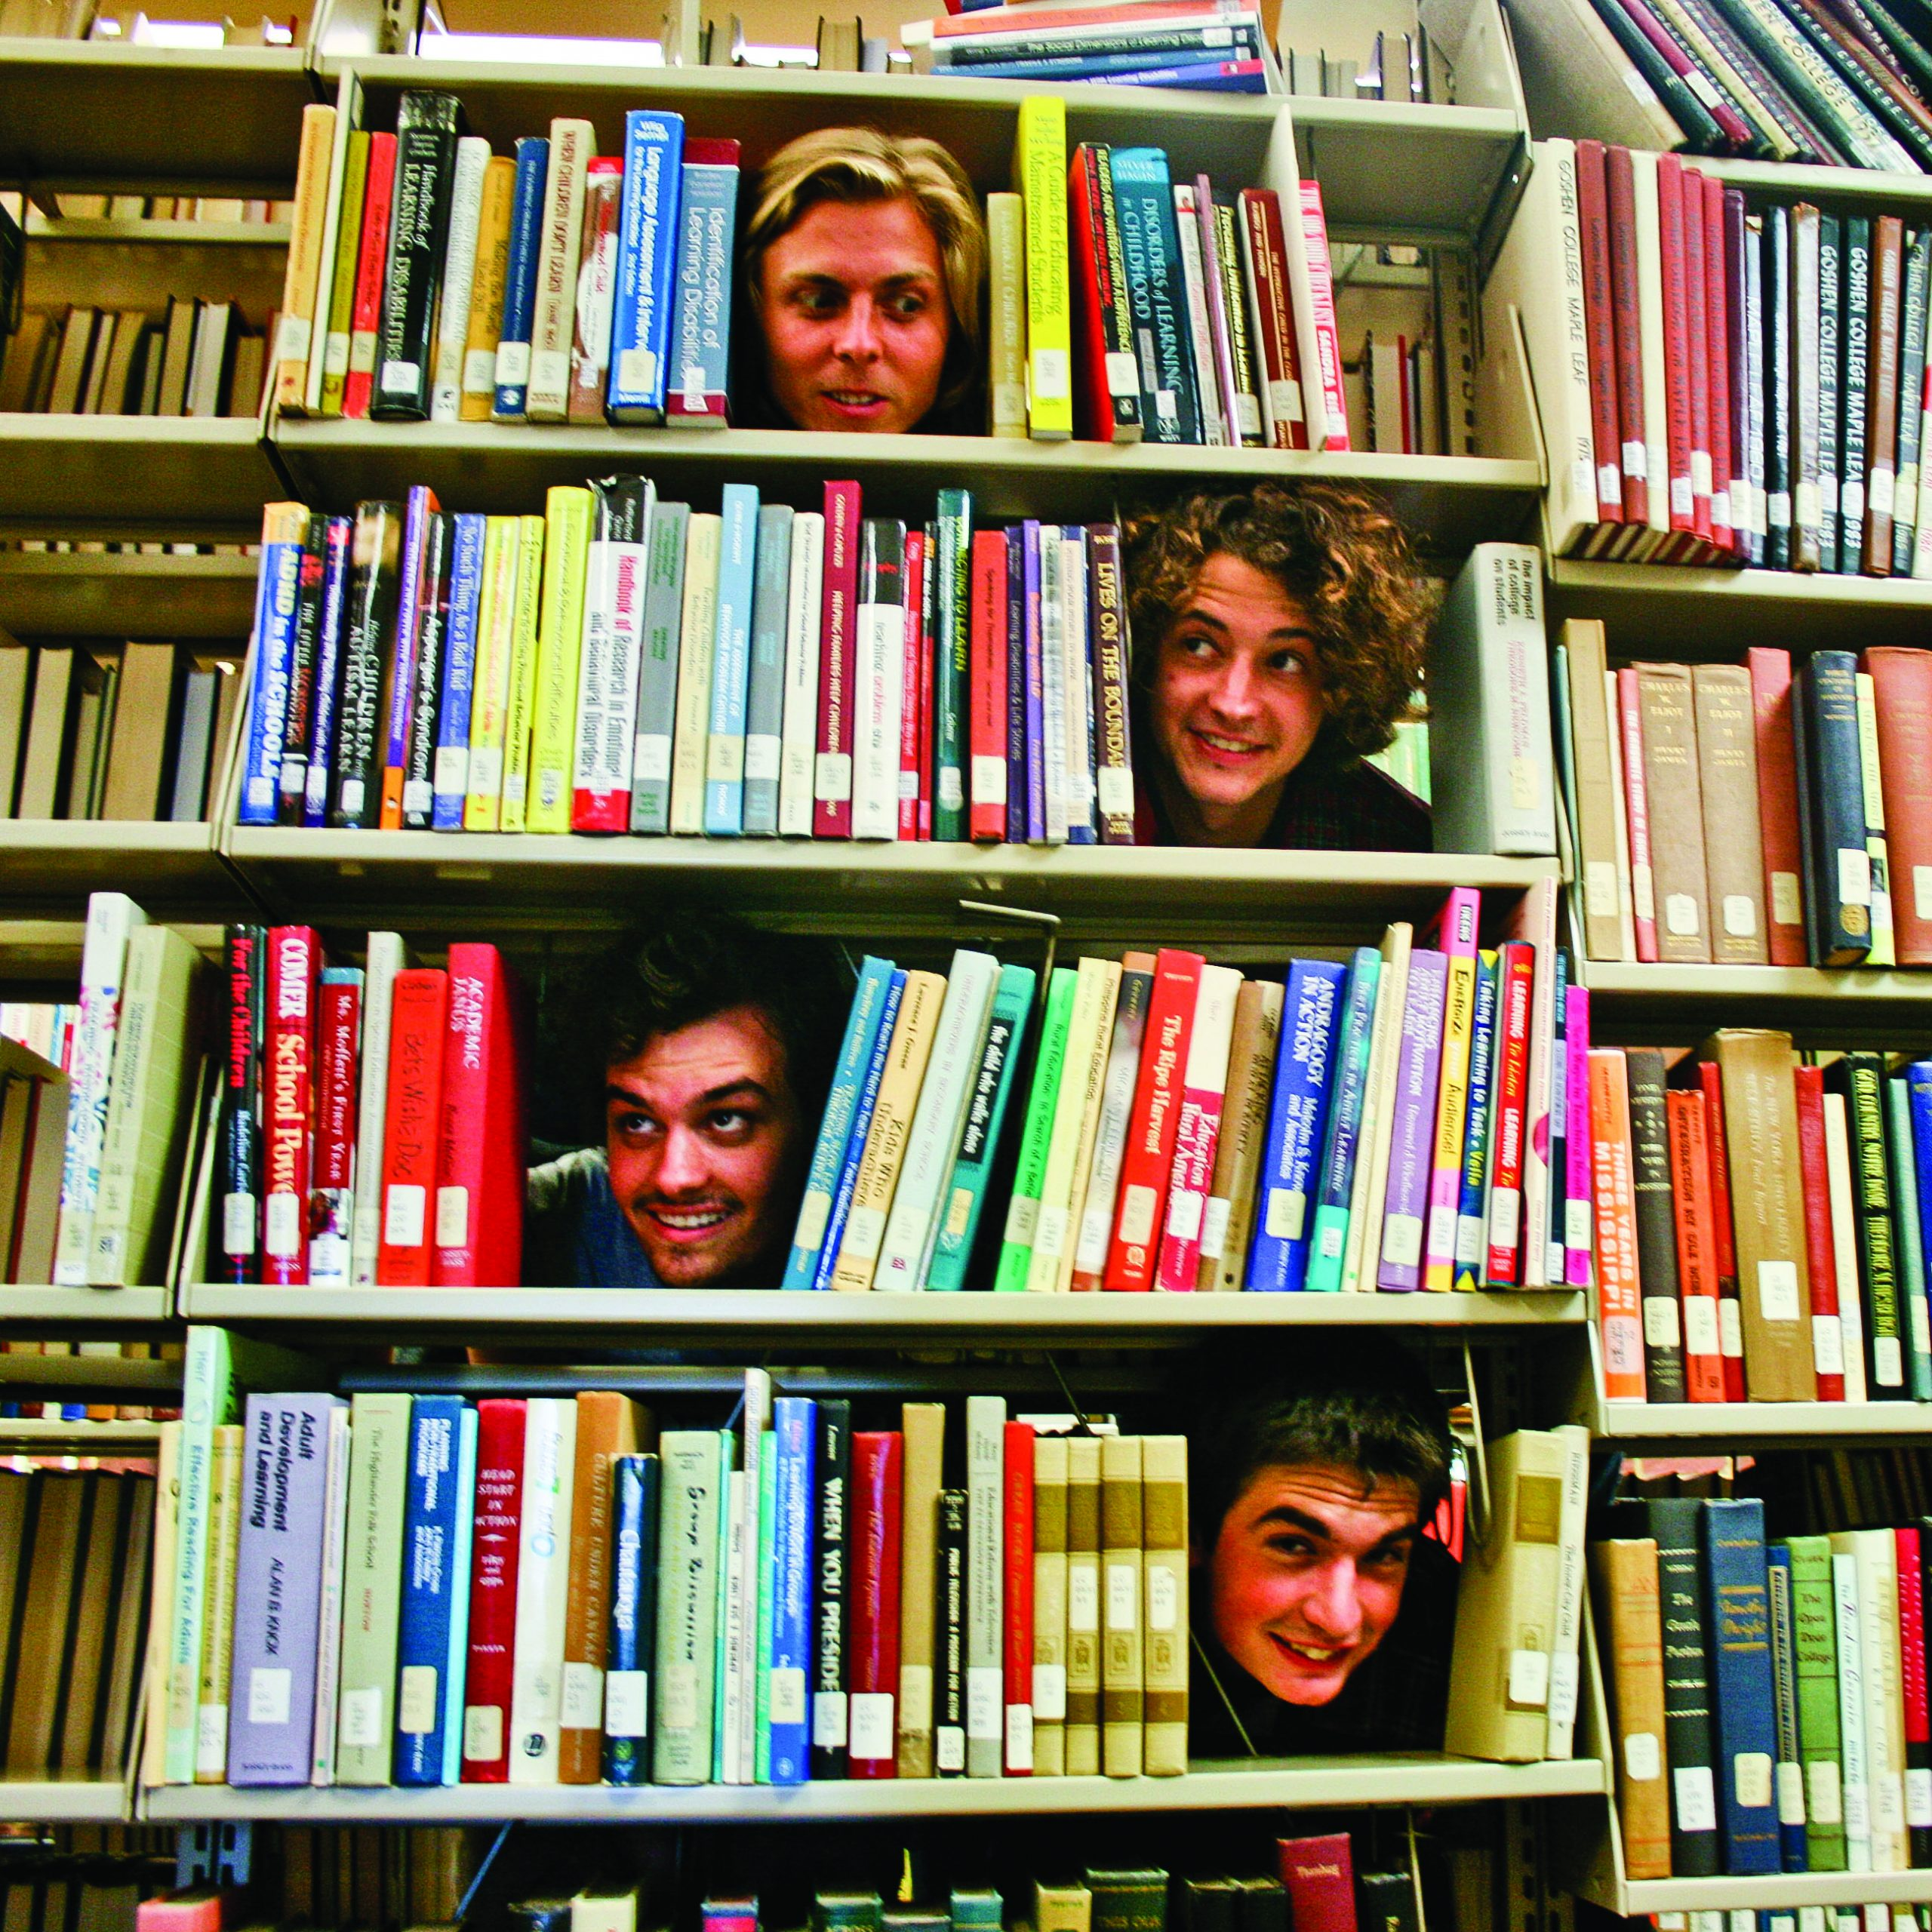 Kansas Bible Company members Charlie Frederick, Nate Klink, Jacob Martin and Jeff Yoder pose for a funny picture, sticking their heads through open spaces in bookshelves in the Good Library